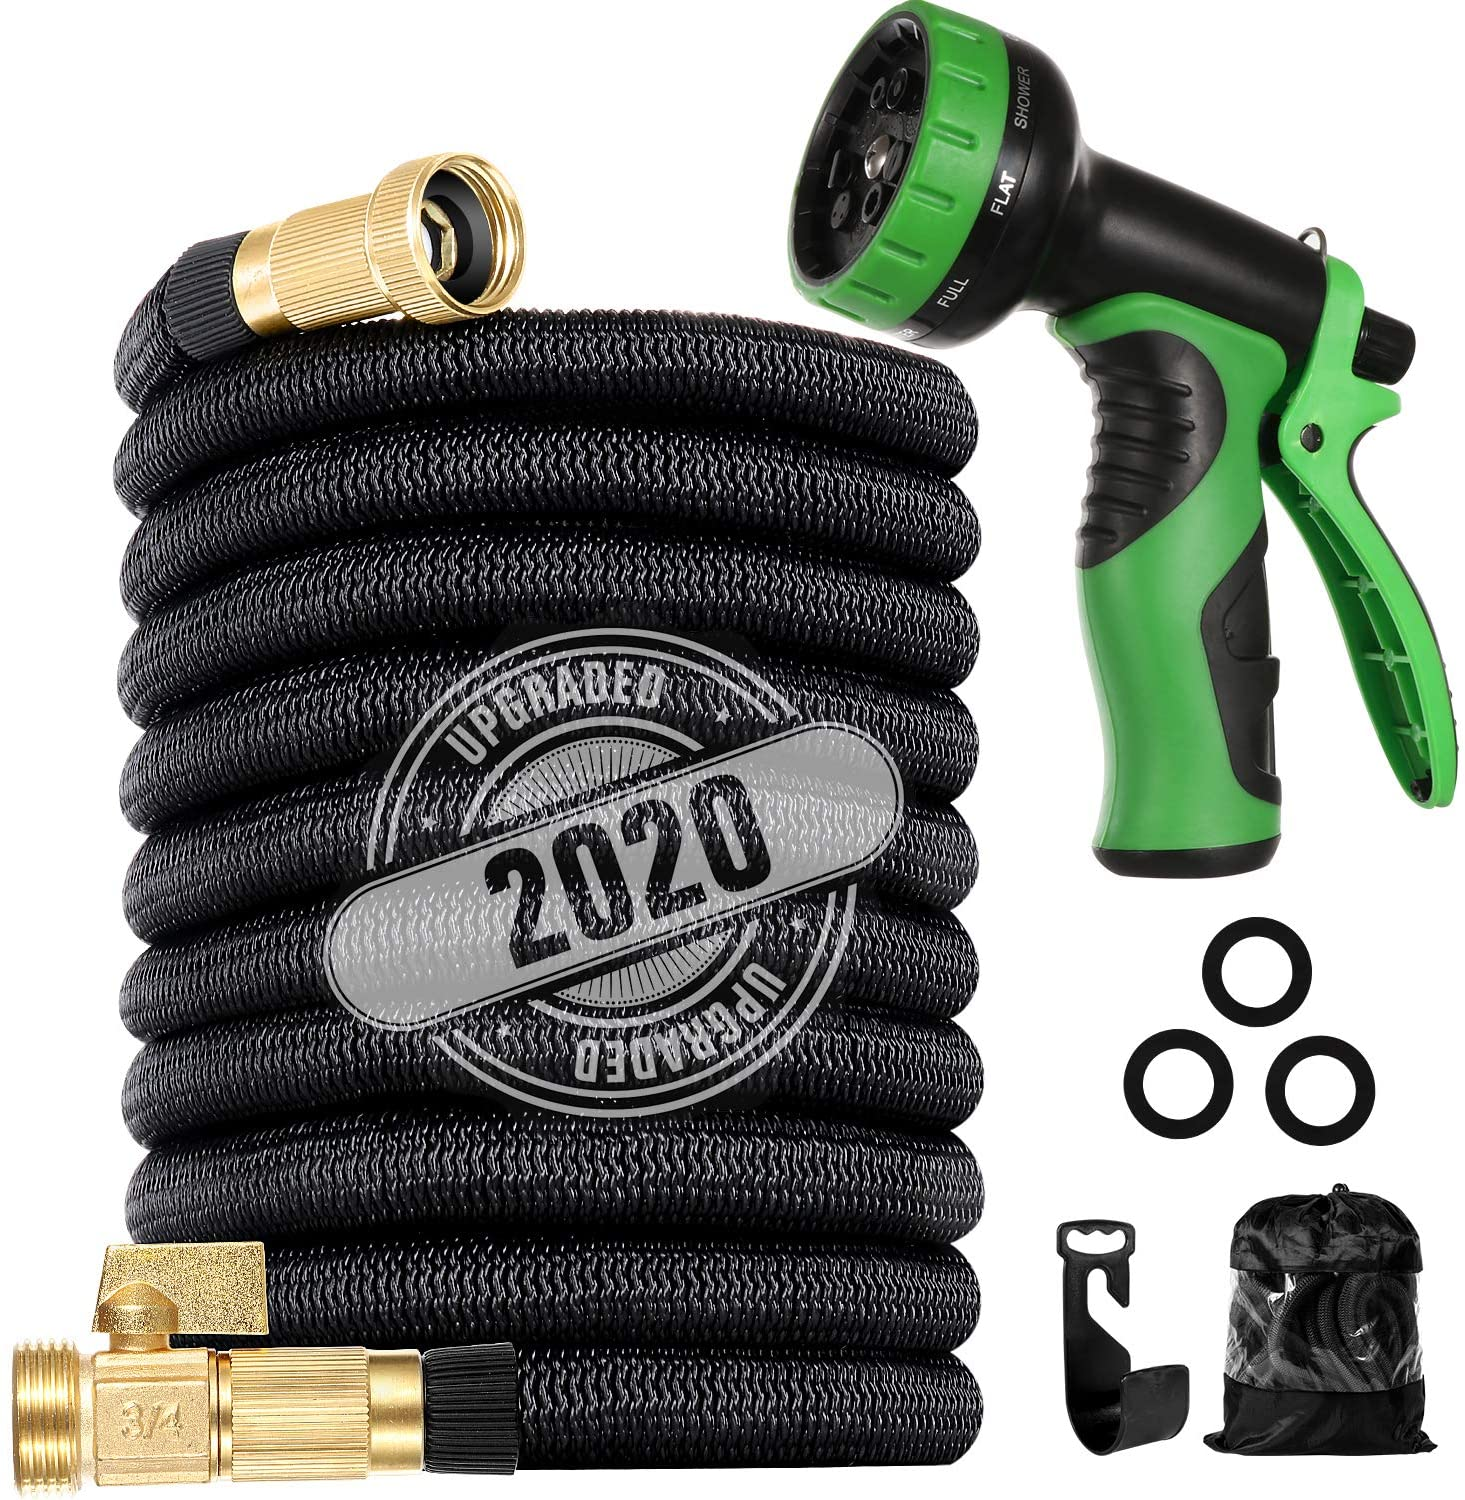 Best 200 Ft Garden Hose Reviews and Buying Guide 2021